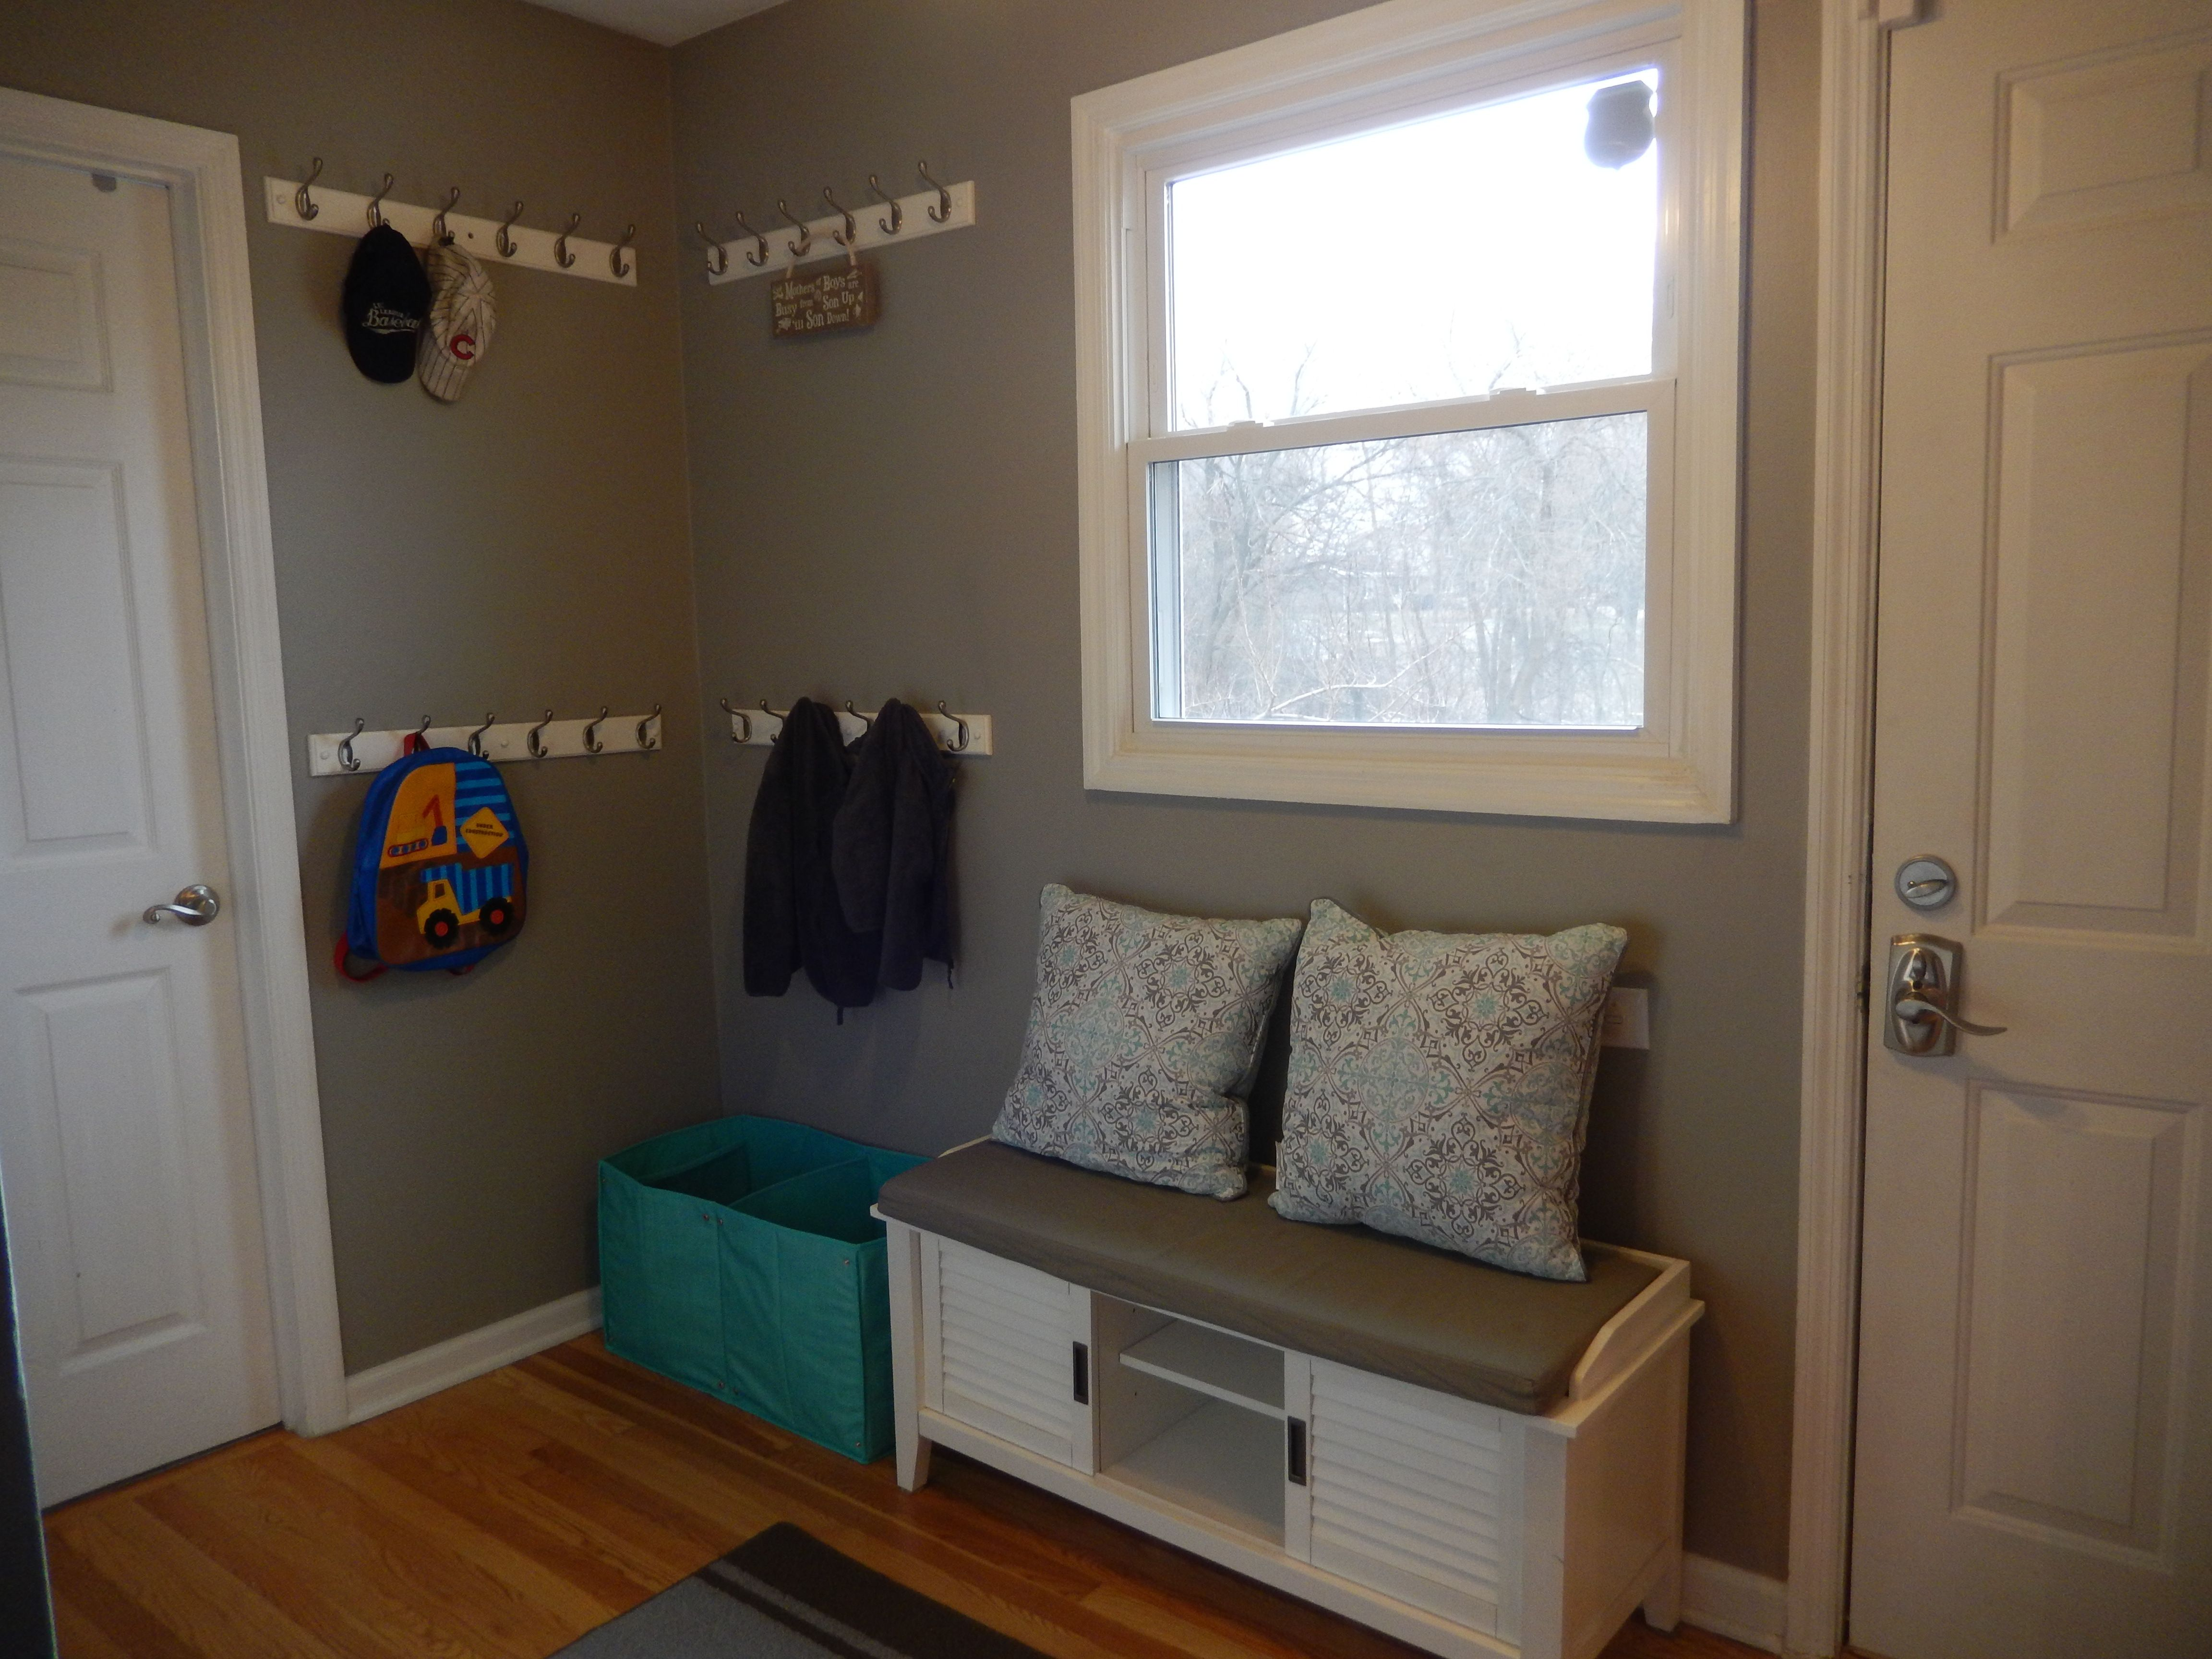 Mudroom with bench grat walls plenty of hooks for backpacks and